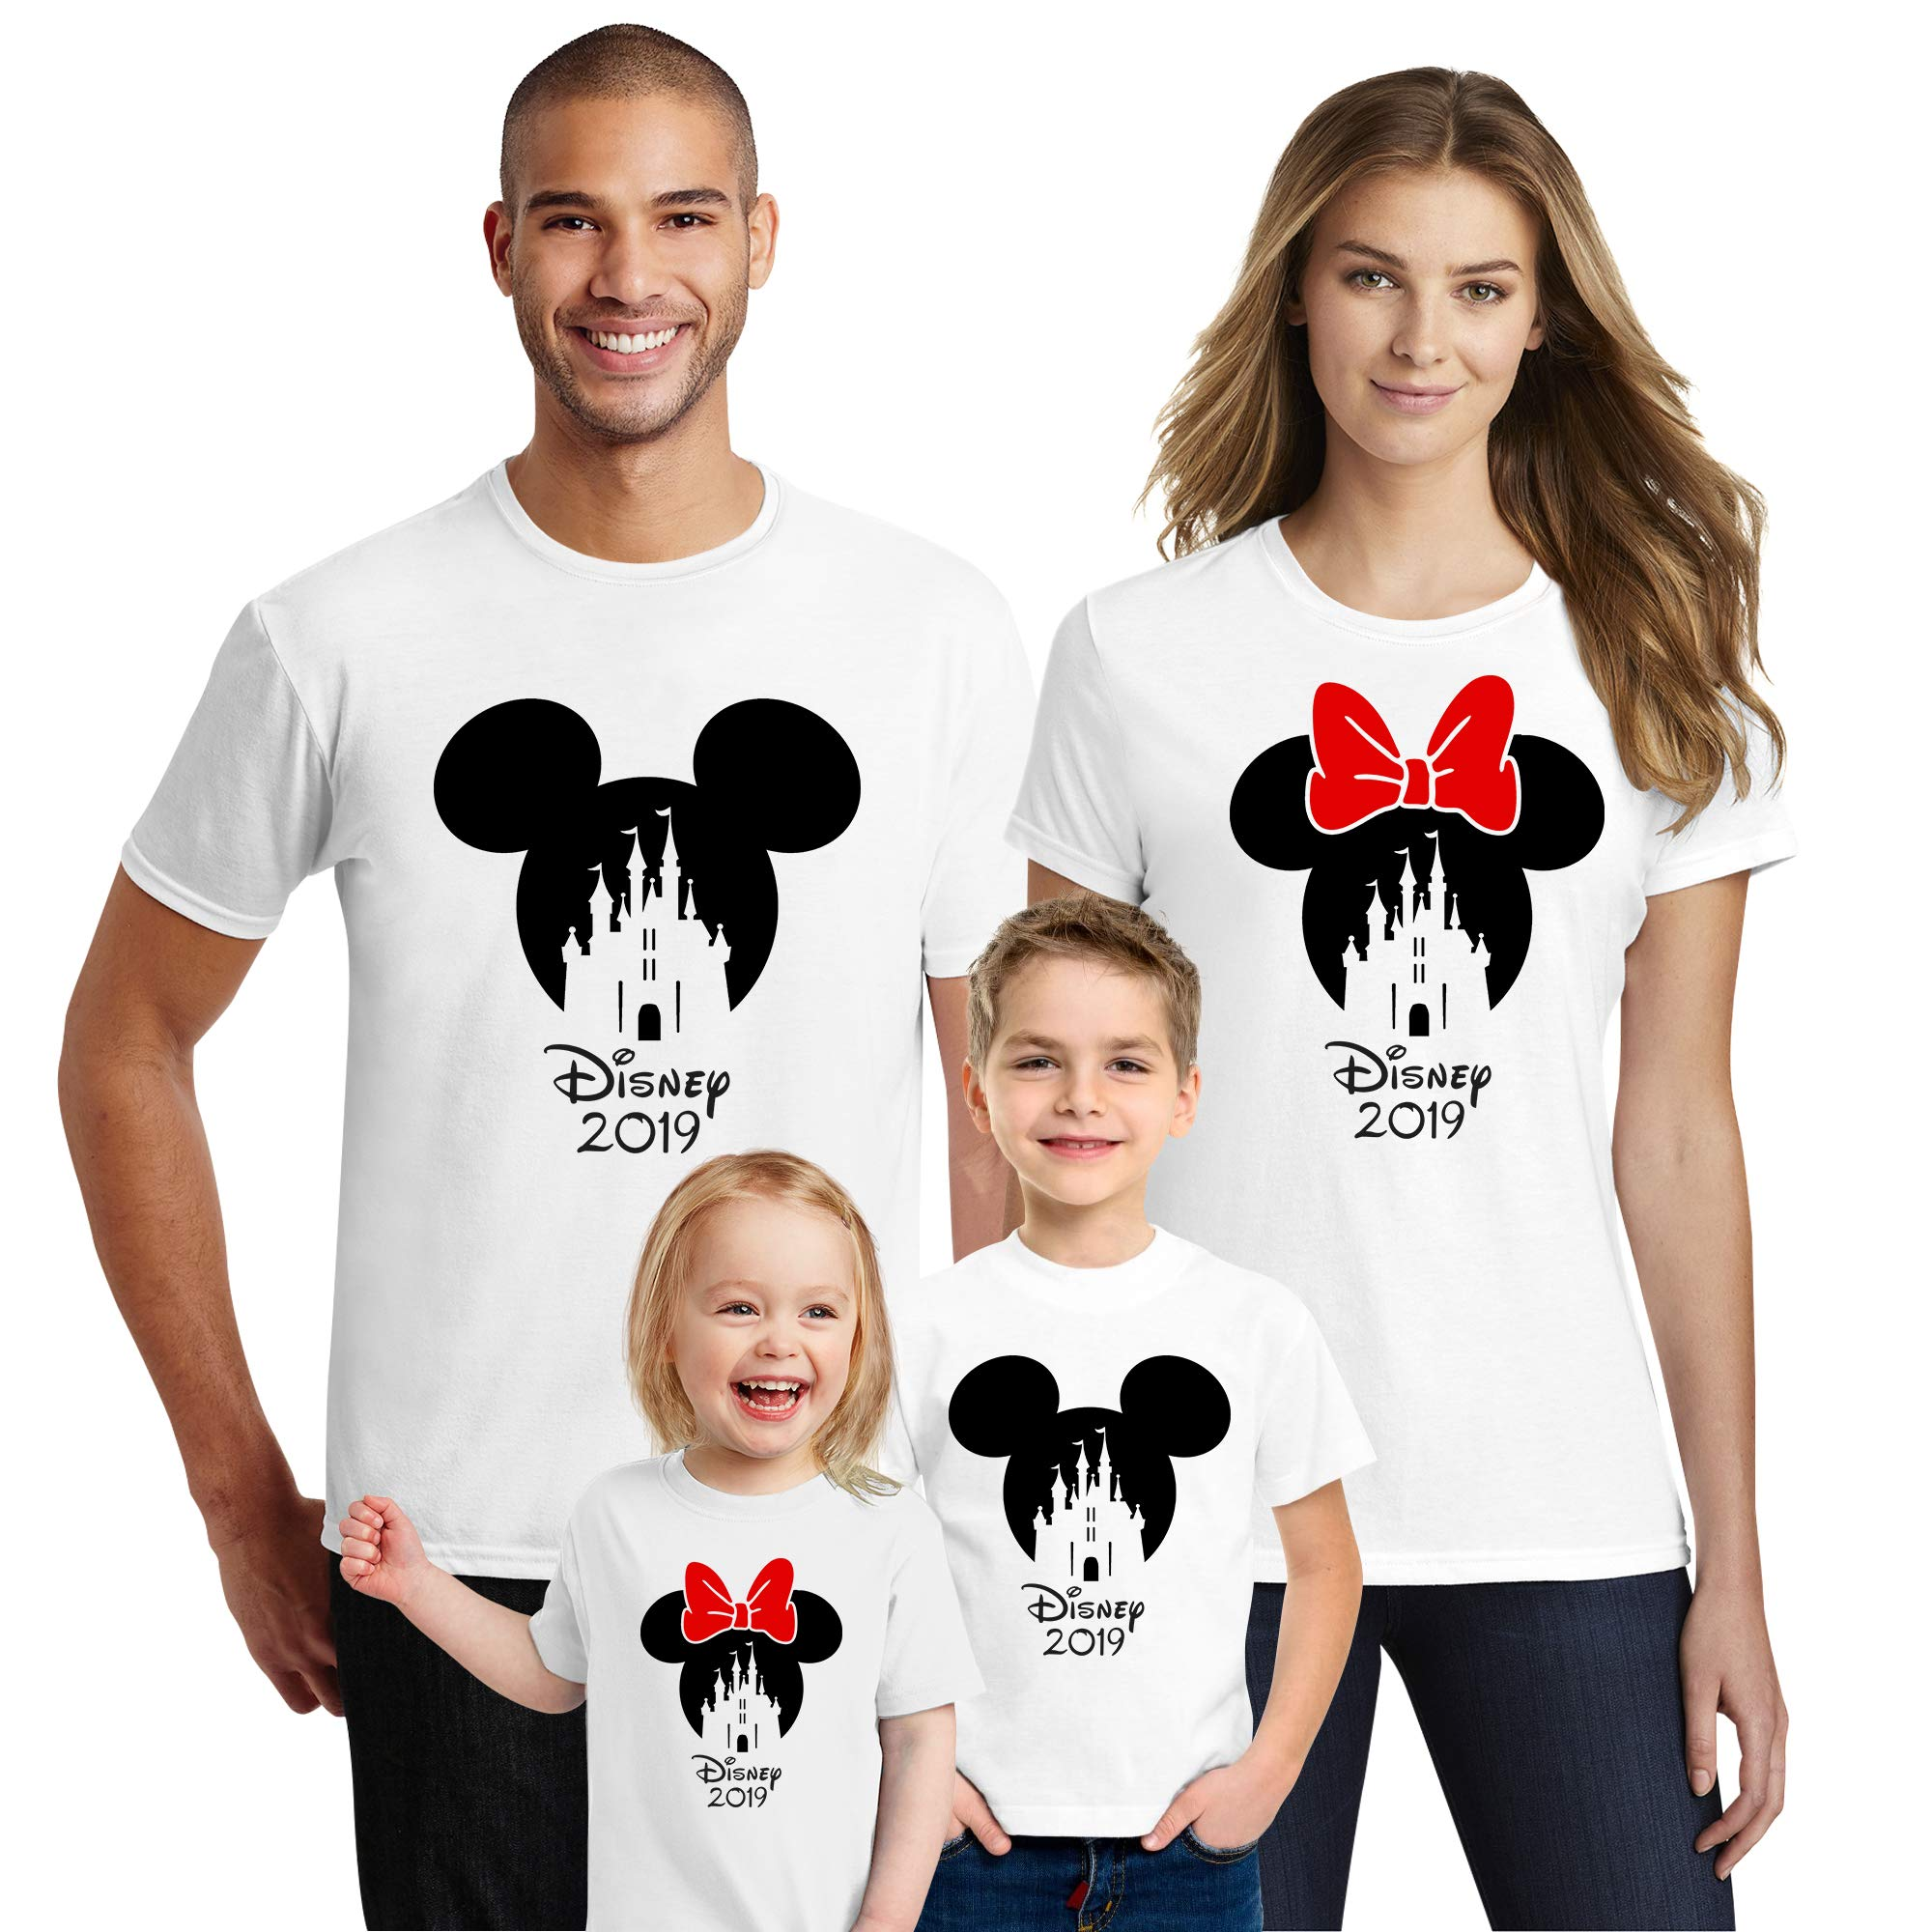 Natural Underwear Castle with 2019 T-Shirts Shirts Trip Mouse Crew Neck T Shirts White Youth Boys Small